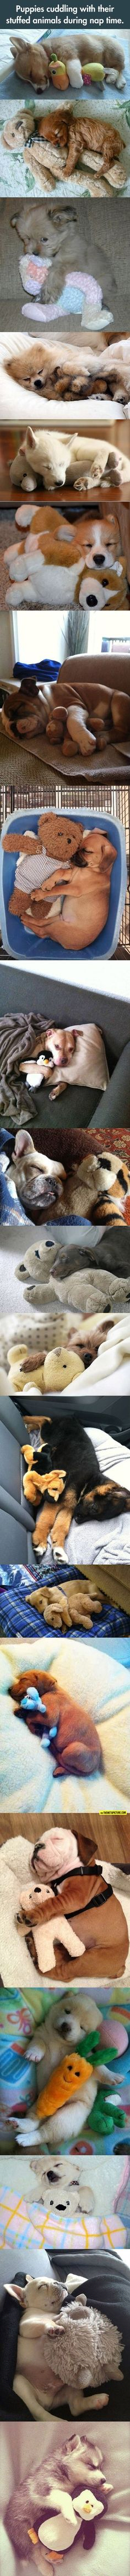 Best Naps You'll See Today